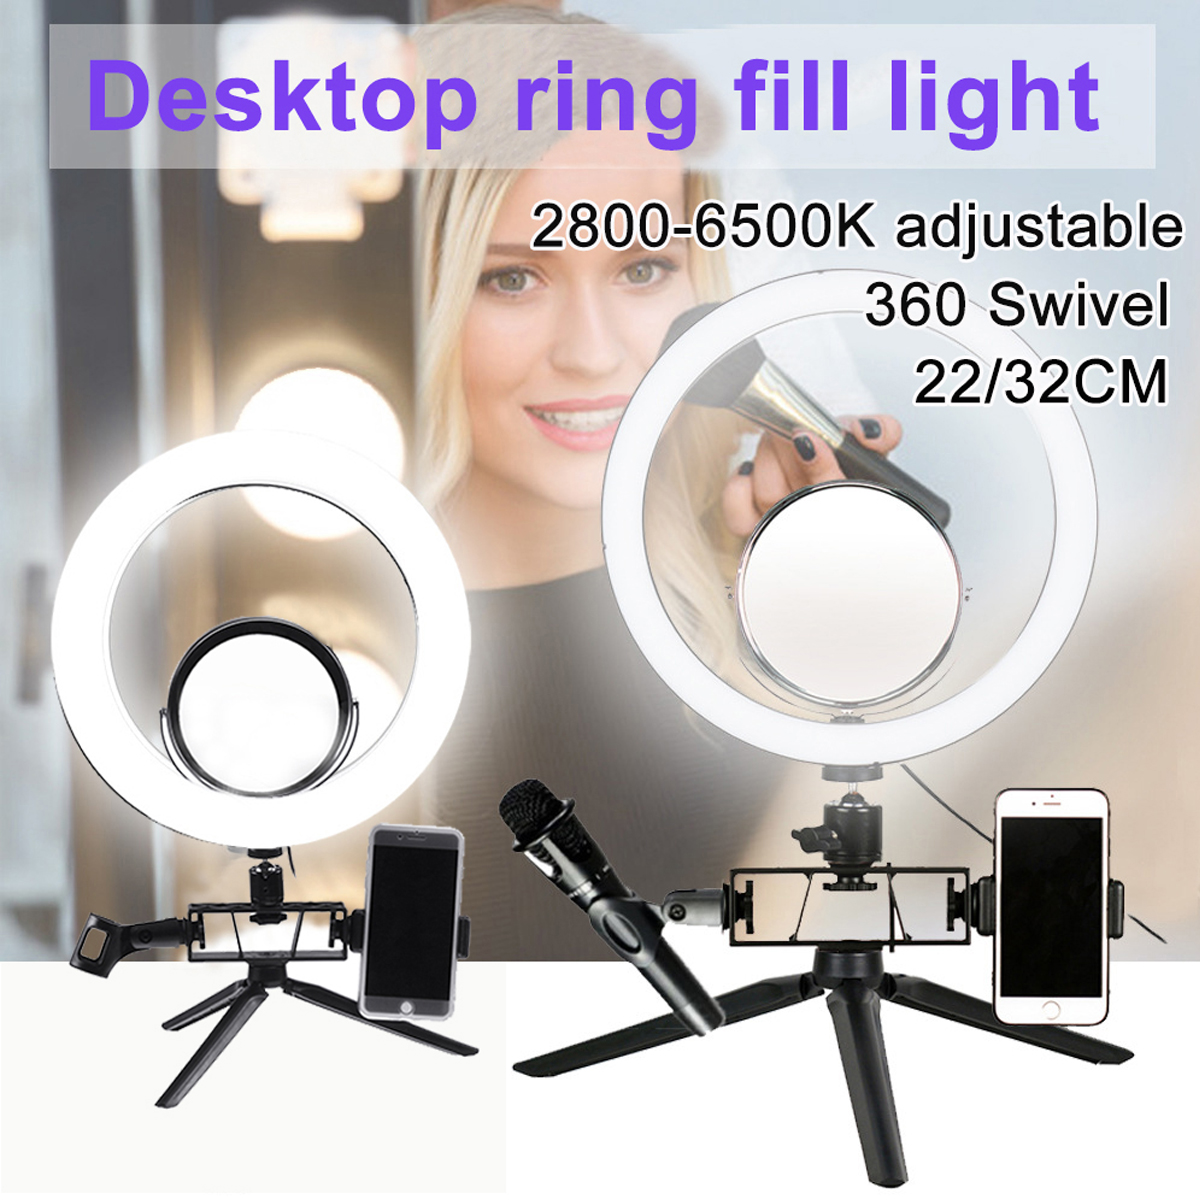 32cm Studio LED Ring Light w// Mirror Dimmable Photo Video Lamp For Camera Phone